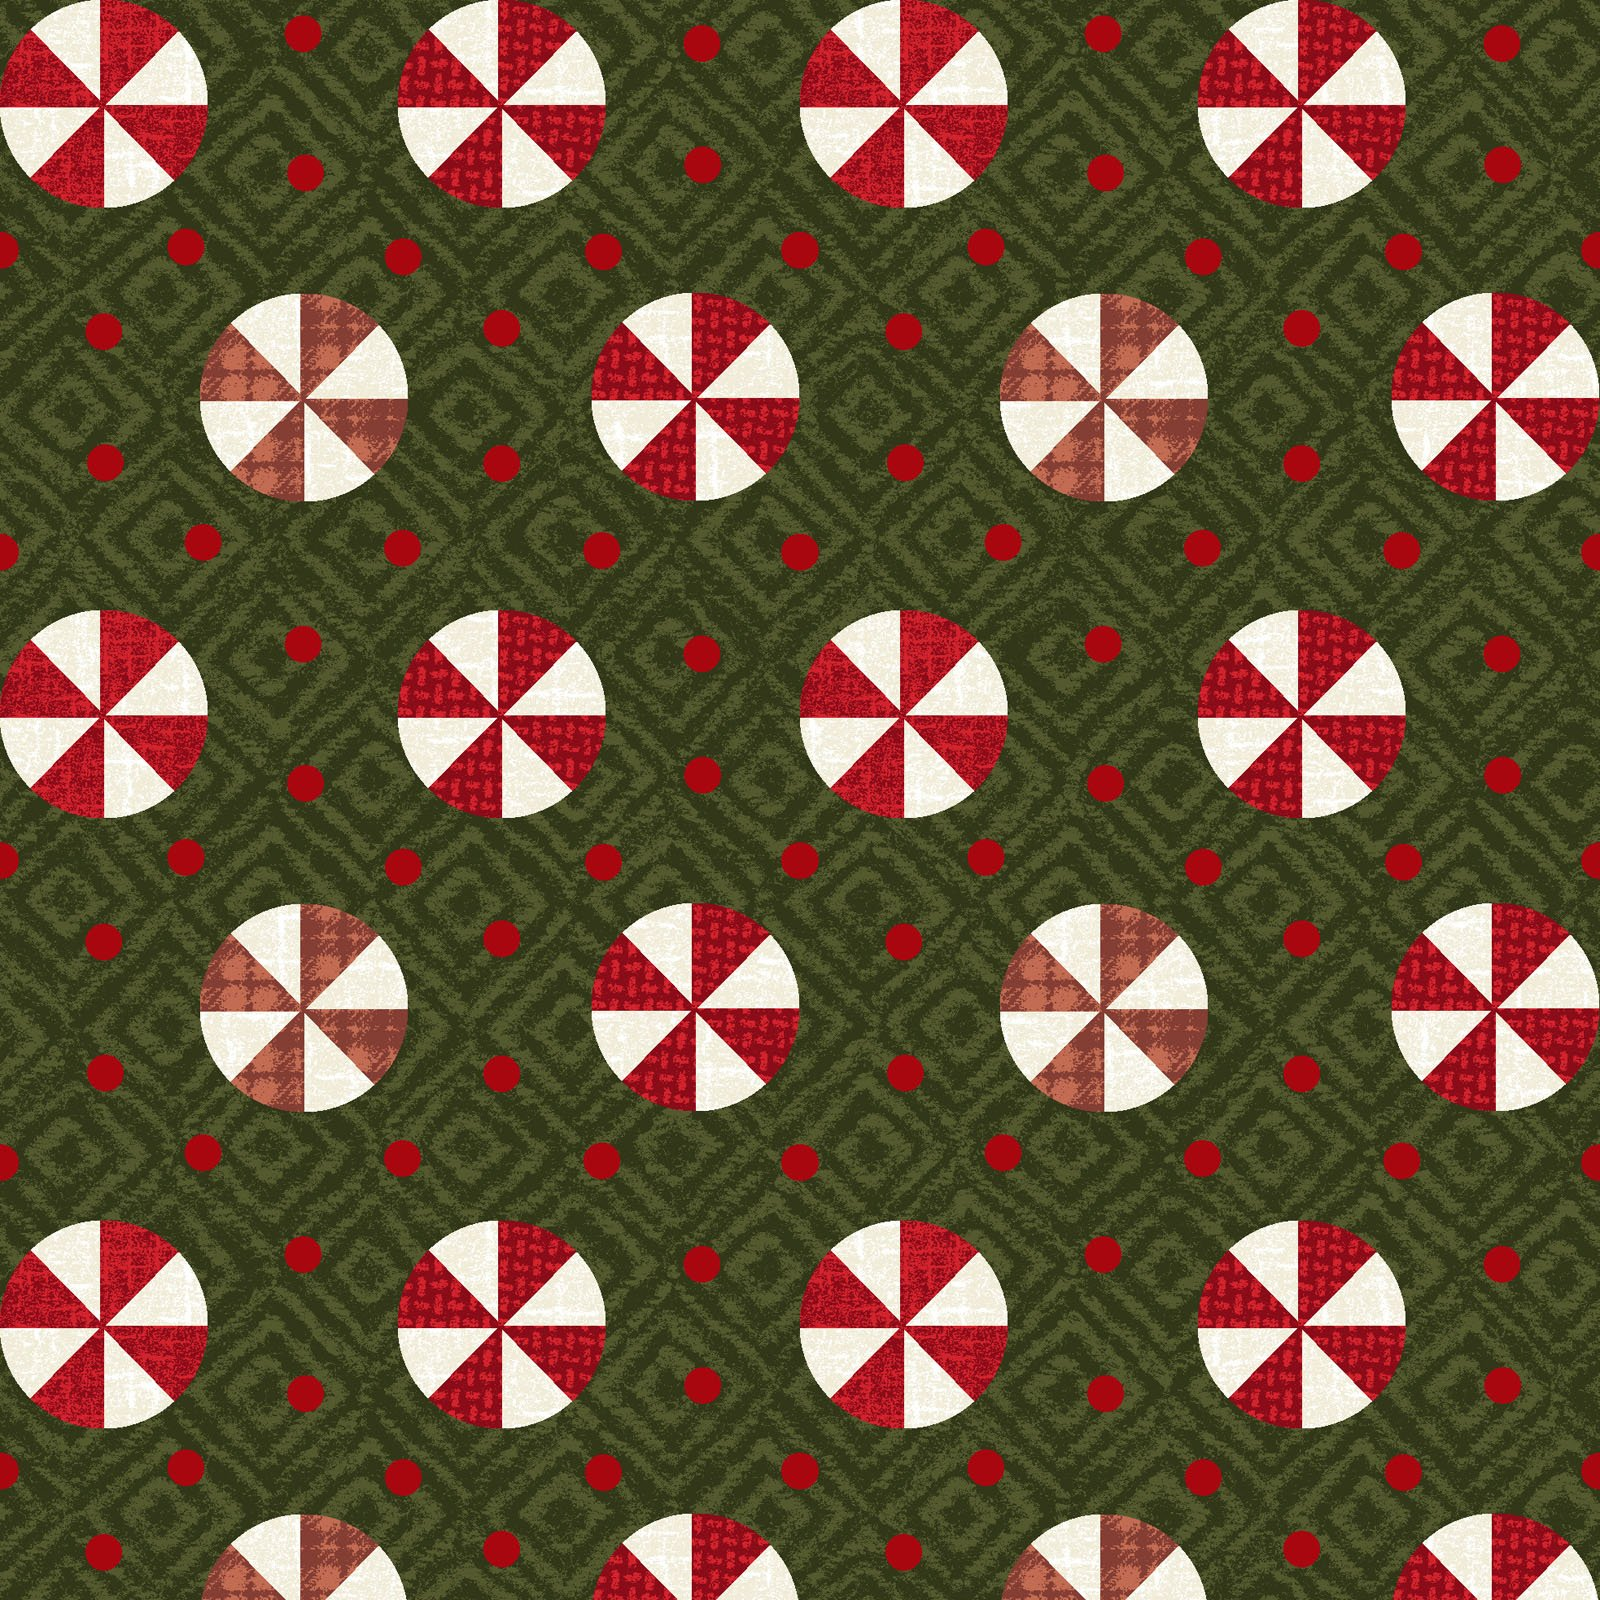 EESC-F9936 G - SNOWDAYS FLANNEL BY BONNIE SULLIVAN PEPPERMINT GREEN - ARRIVING IN JULY 2021